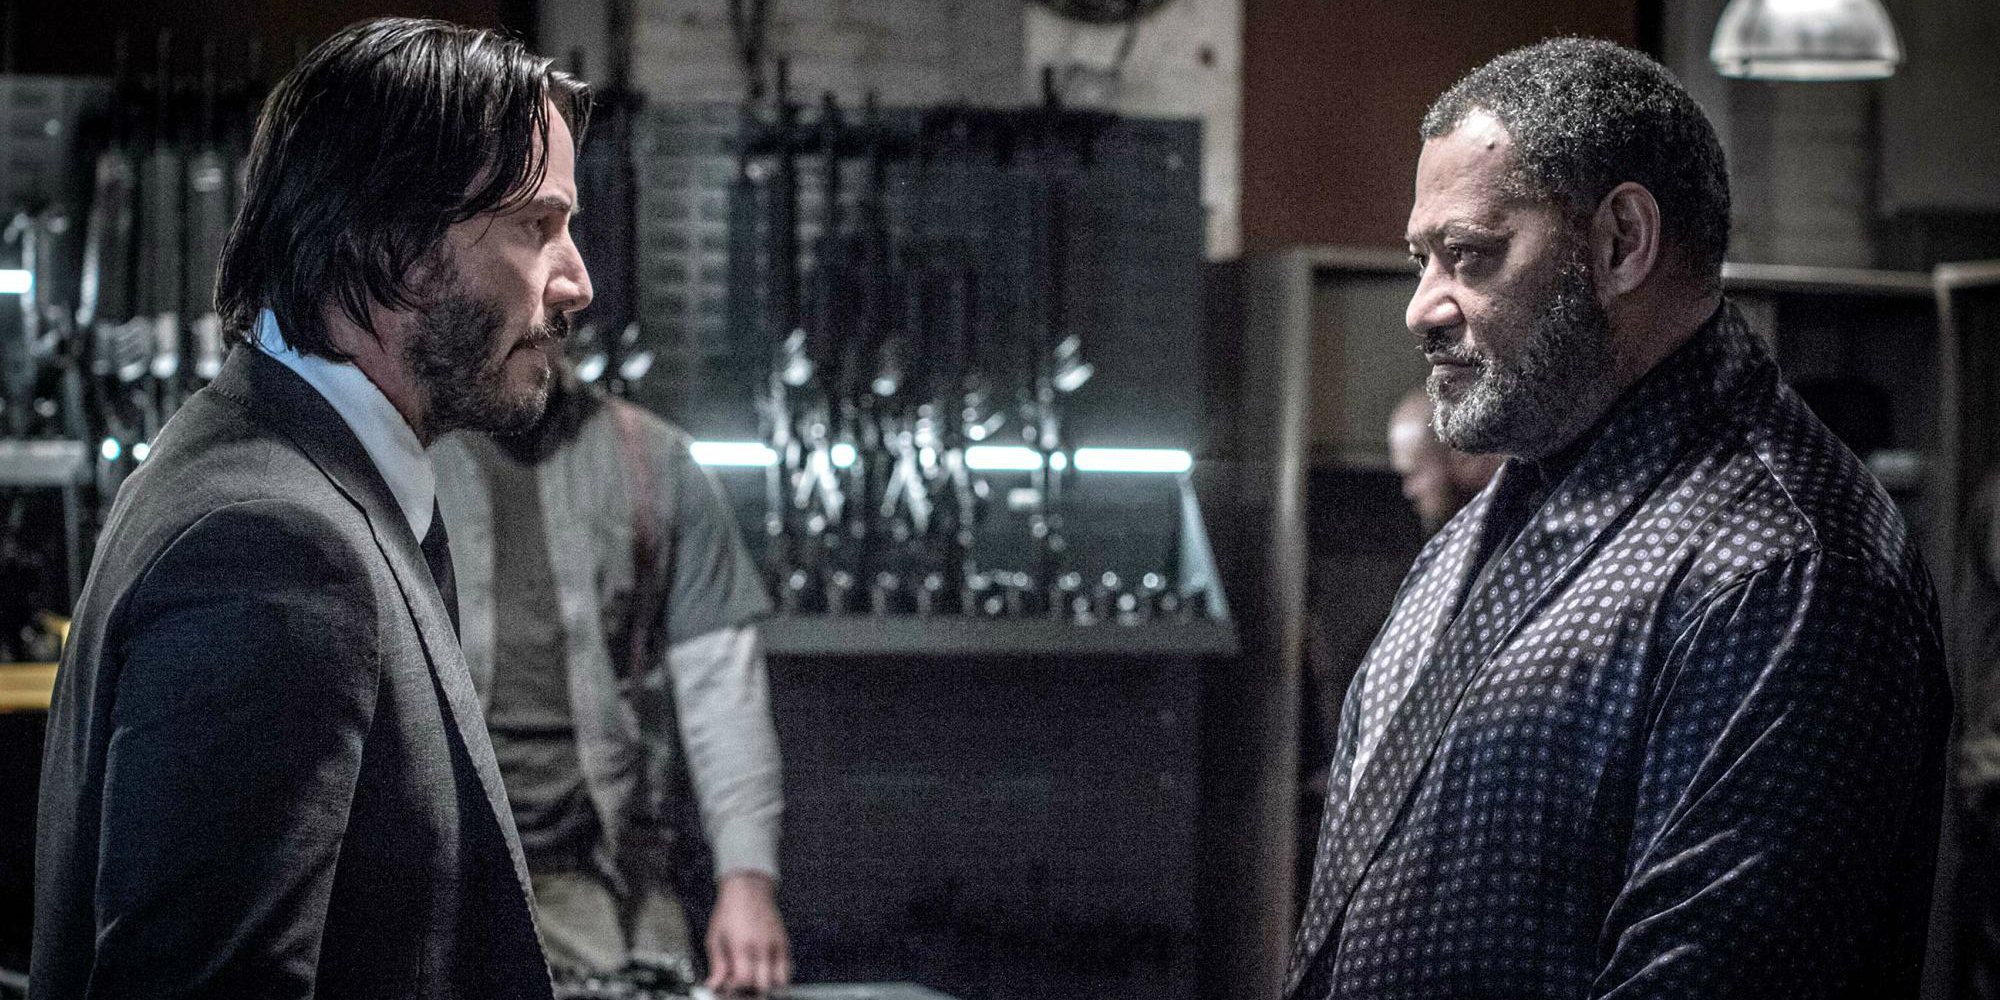 Keanu Reeves and Lawrence Fishburne in John Wick 2 banner